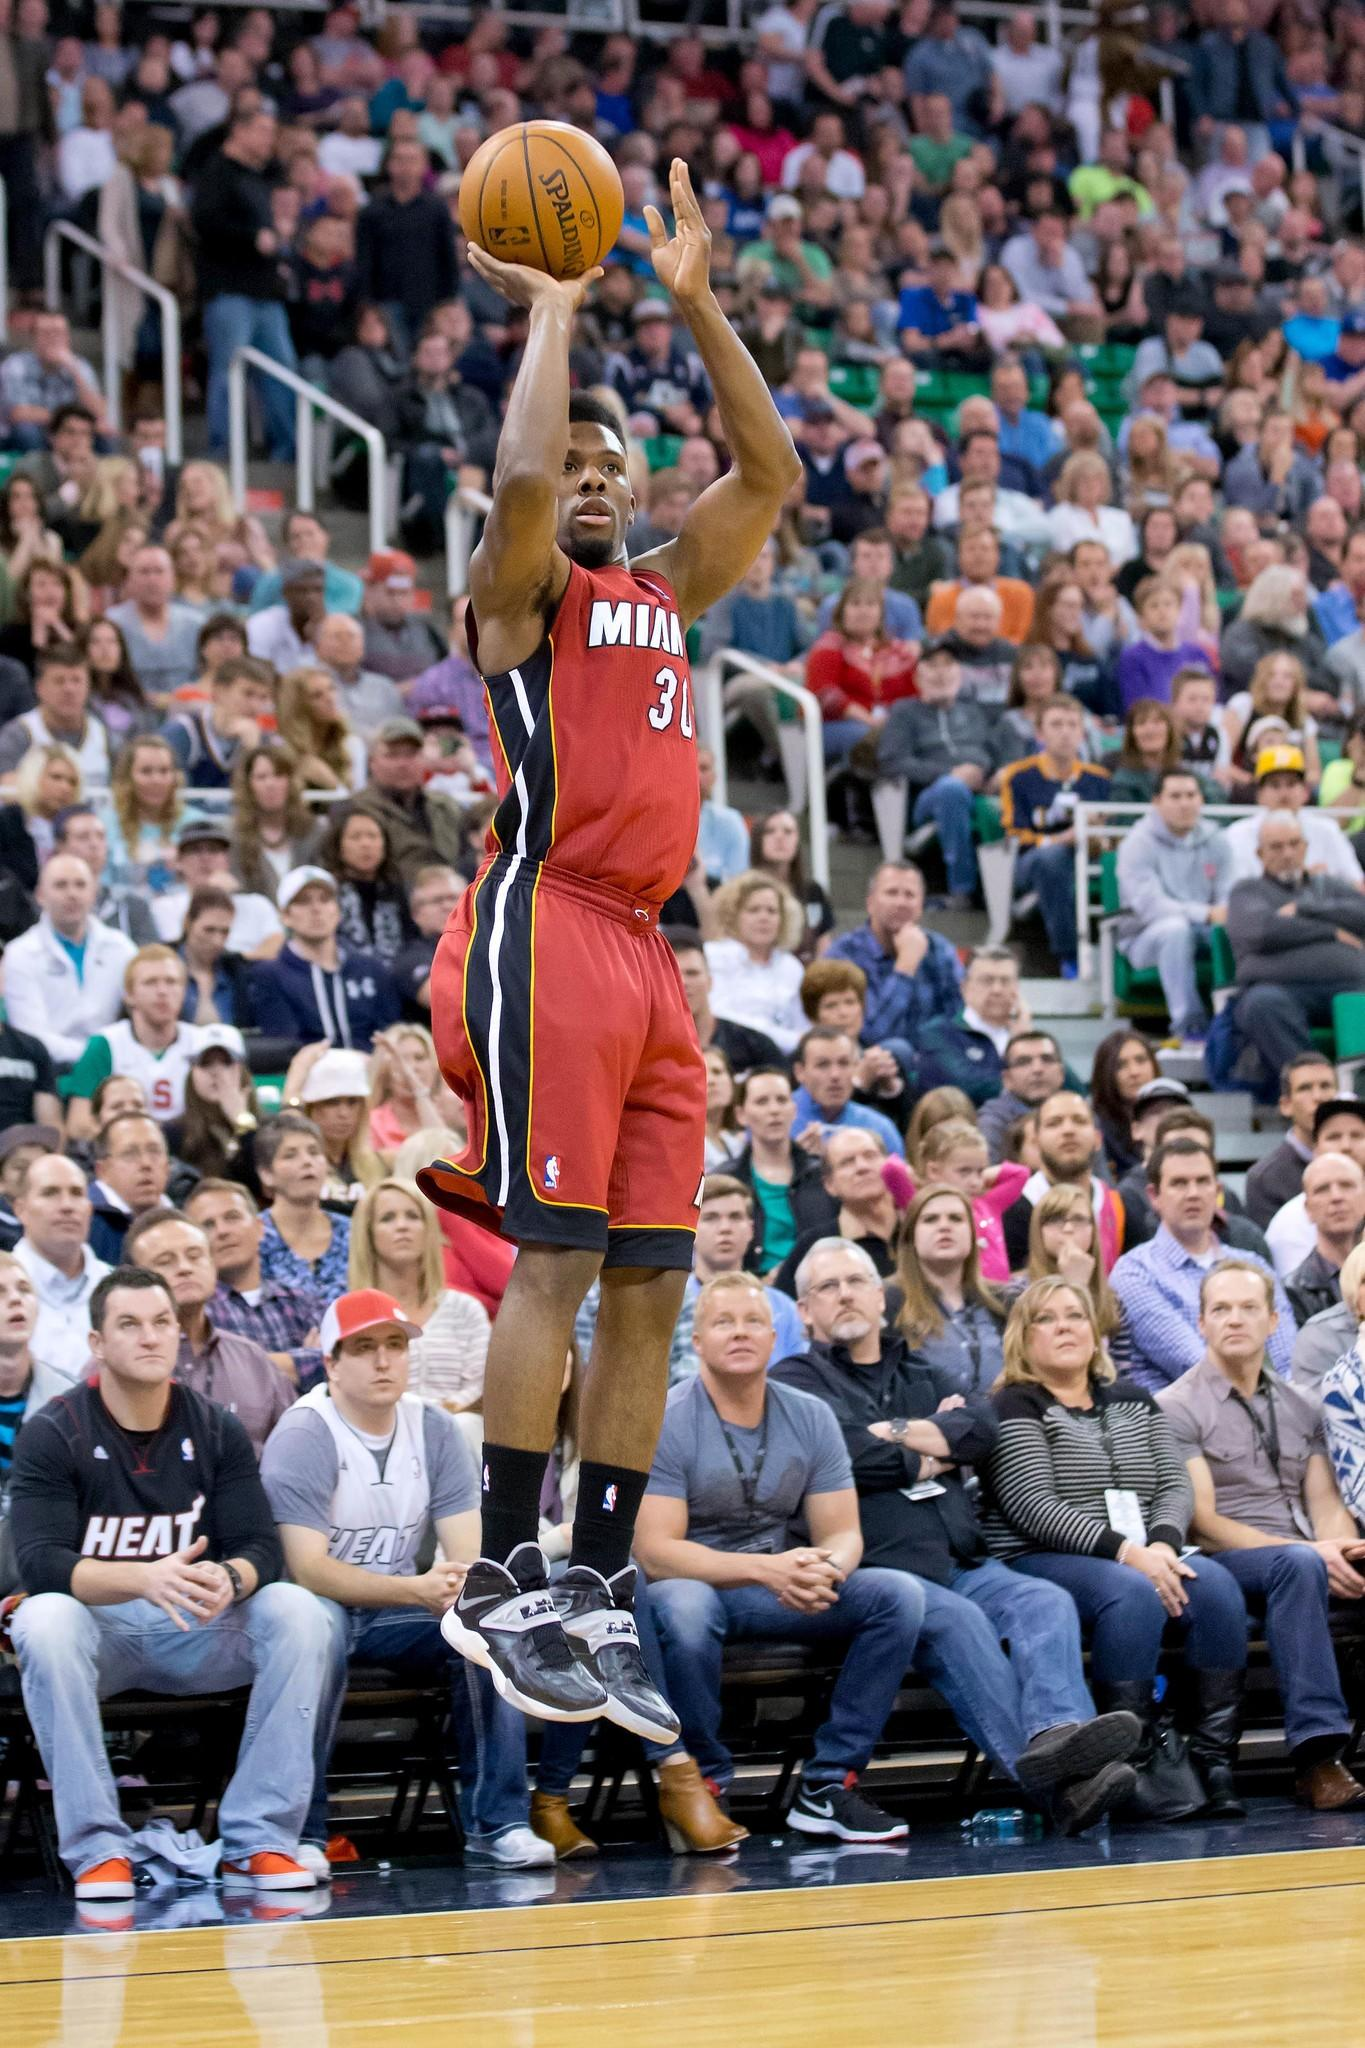 Feb 8, 2014; Salt Lake City, UT, USA; Miami Heat point guard Norris Cole (30) shoots during the first half against the Utah Jazz at EnergySolutions Arena. Mandatory Credit: Russ Isabella-USA TODAY Sports ORG XMIT: USATSI-140986